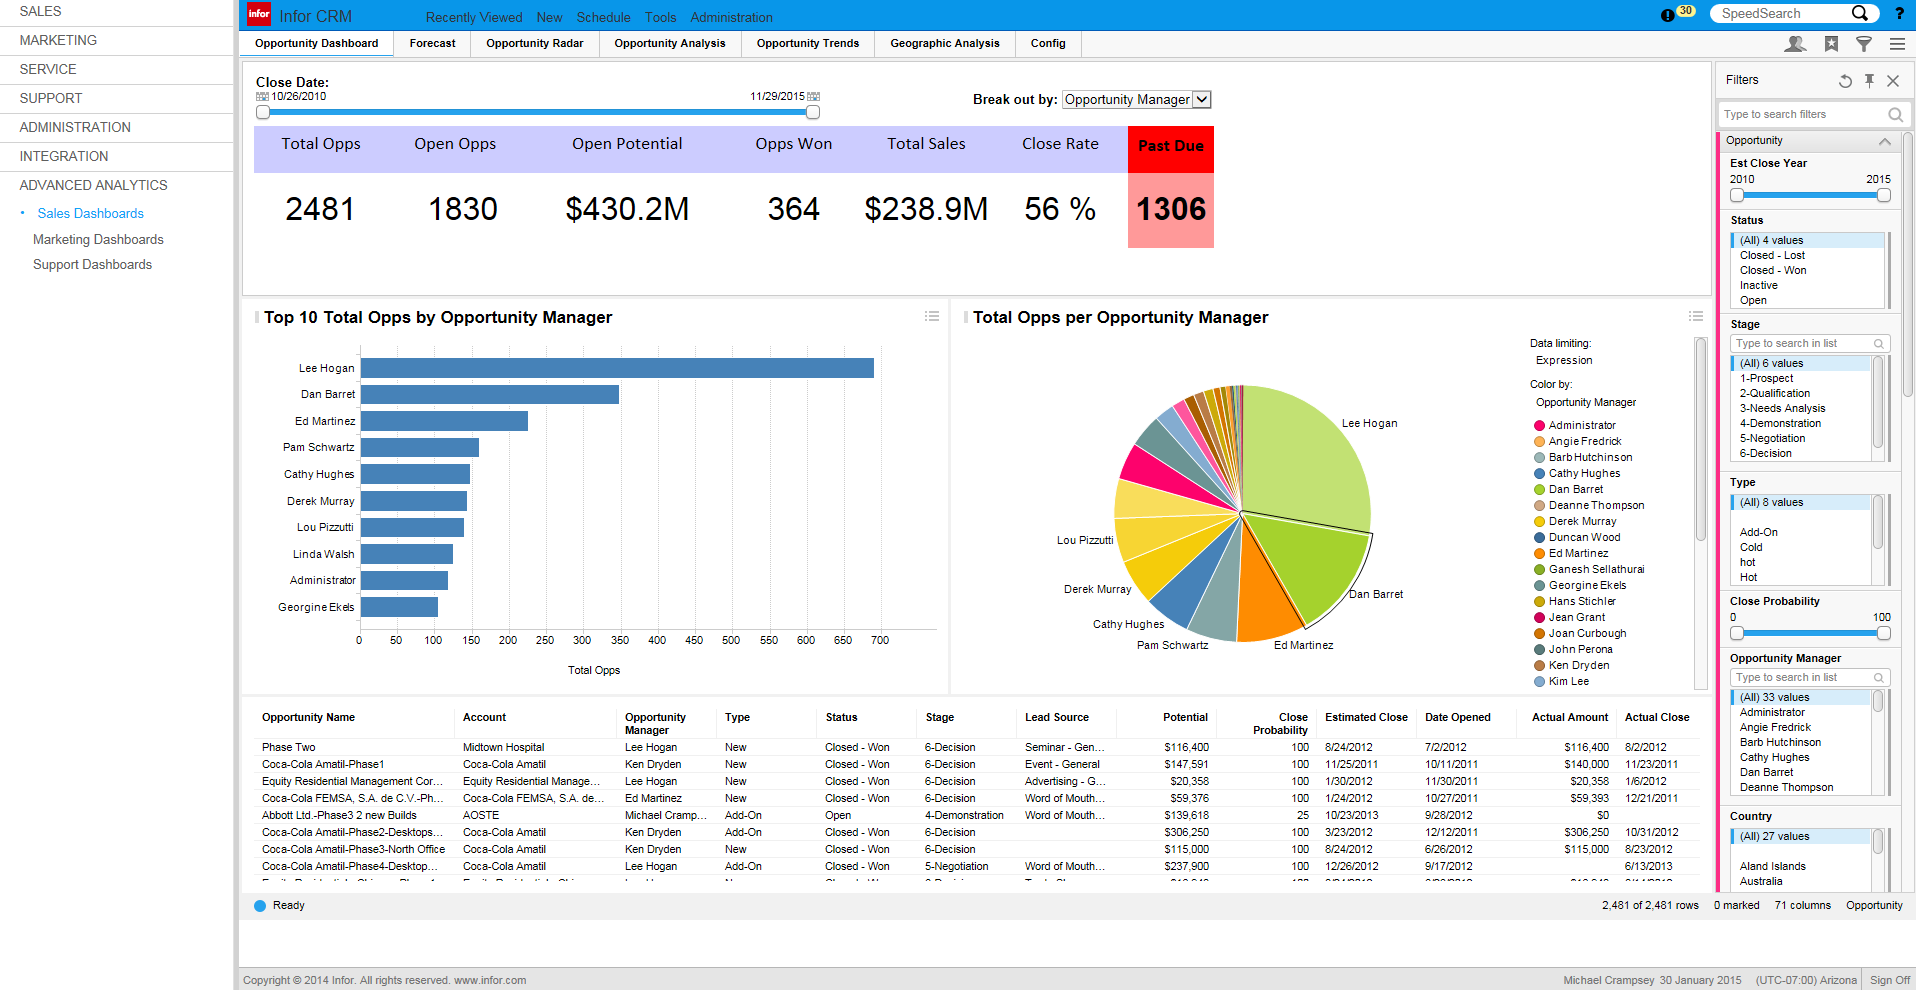 infor-crm-opportunity-dashboard.png